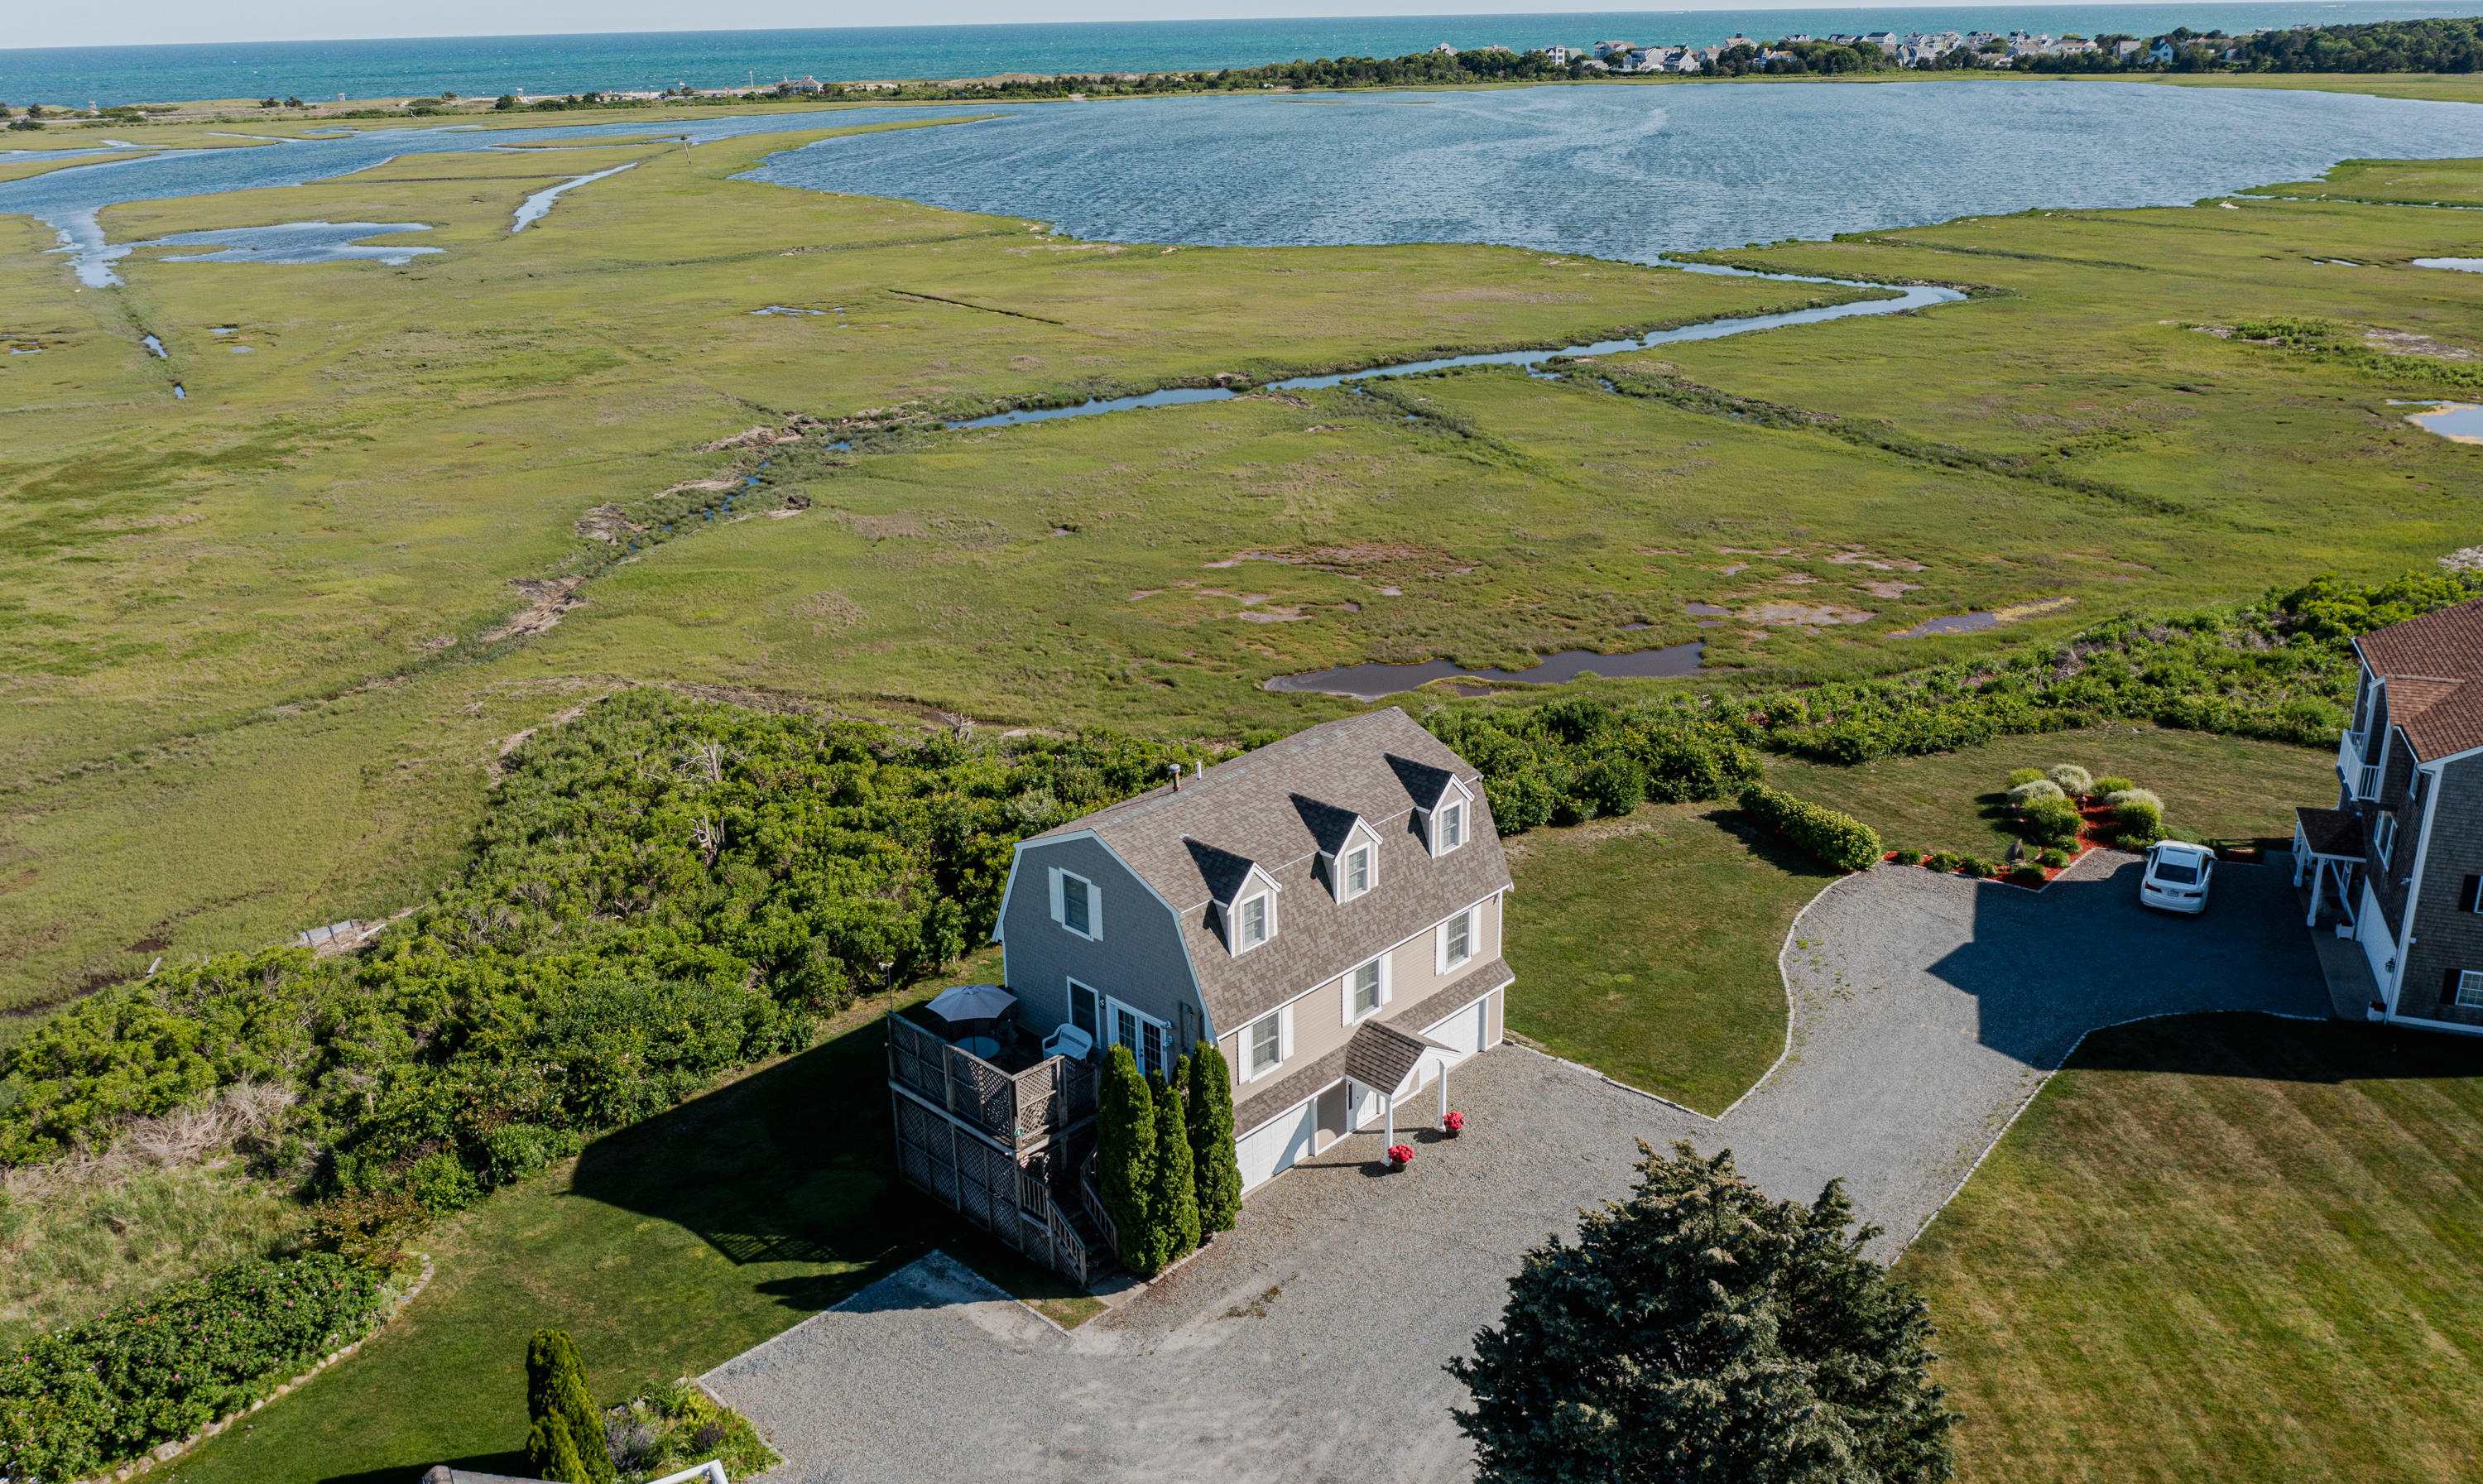 80 Mattakese Road, West Yarmouth MA, 02673 details